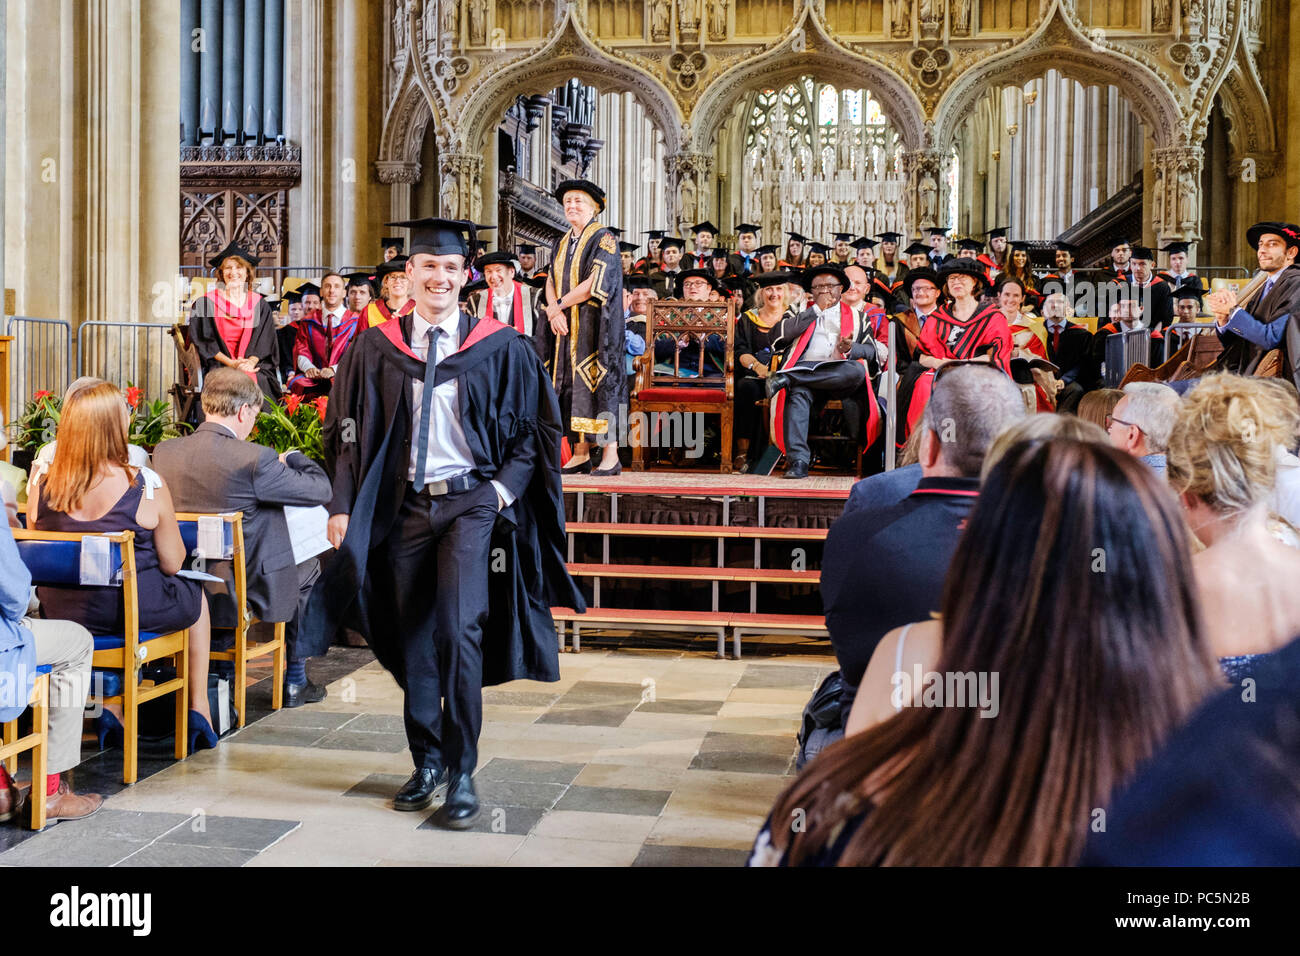 New graduate, young man aged 21, smiling while walking down aisle after graduating. Academic congregation sitting on platform and smiling. - Stock Image